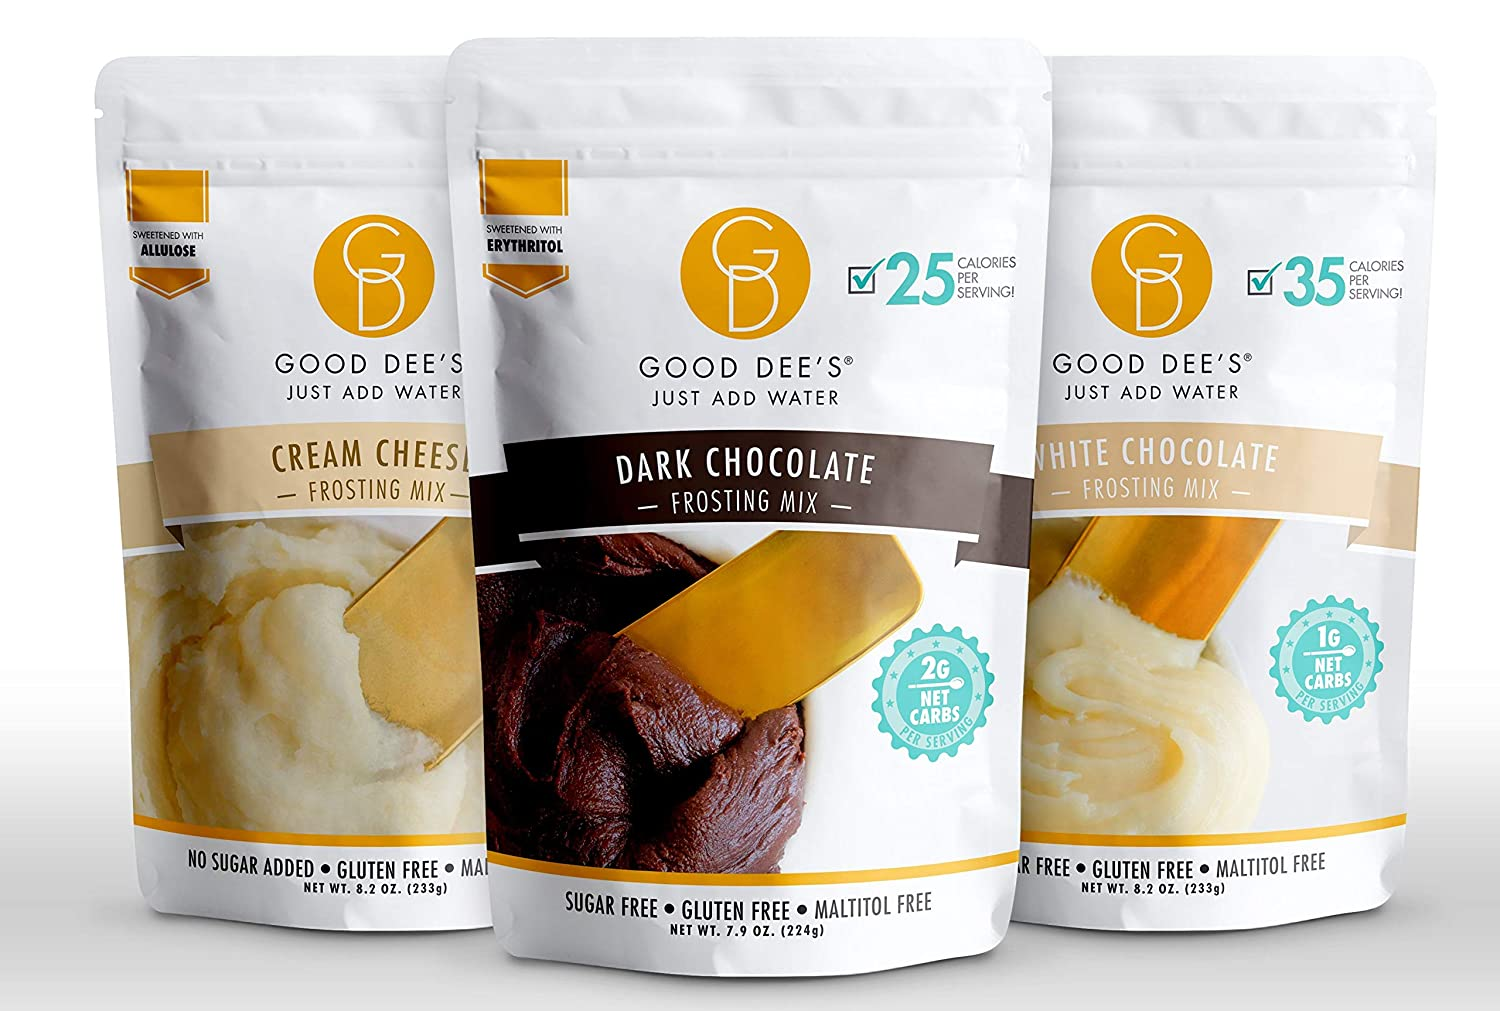 Good Dee's Just Add Water Frosting Bundle-White Chocolate, Dark Chocolate, and Cream Cheese-No Sugar Added, Gluten Free, Keto, Low Carb and Diabetic Friendly 3 Pack